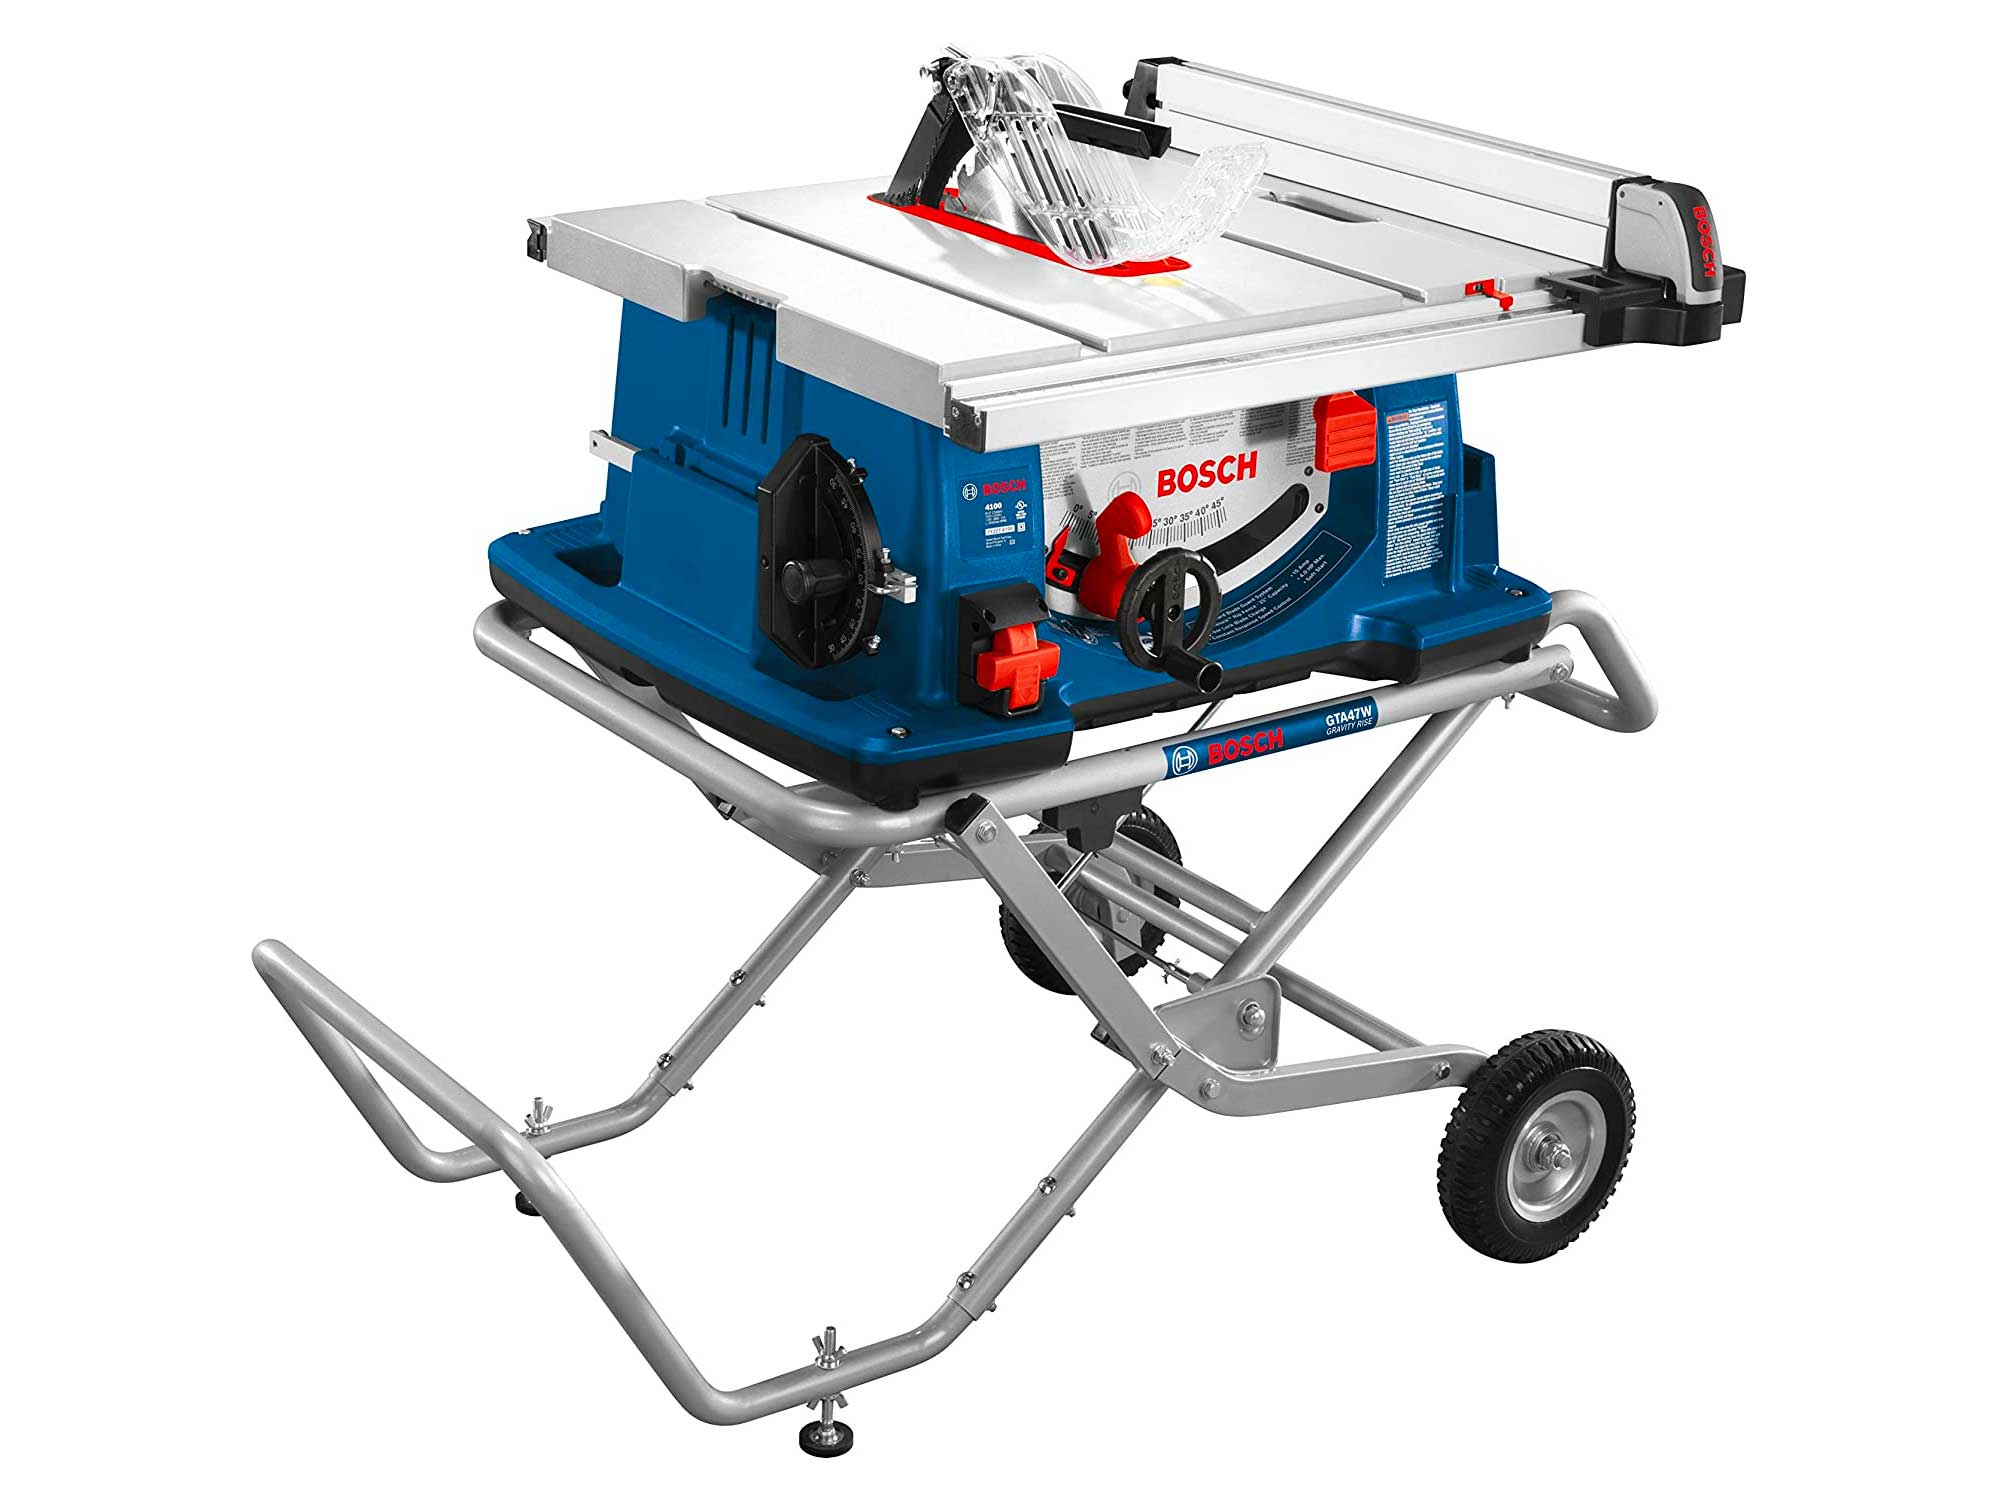 Bosch Power Tools Tablesaw - 10 Inch Jobsite Table Saw with 25 Inch Cutting Capacity and Portable Folding Table Stand